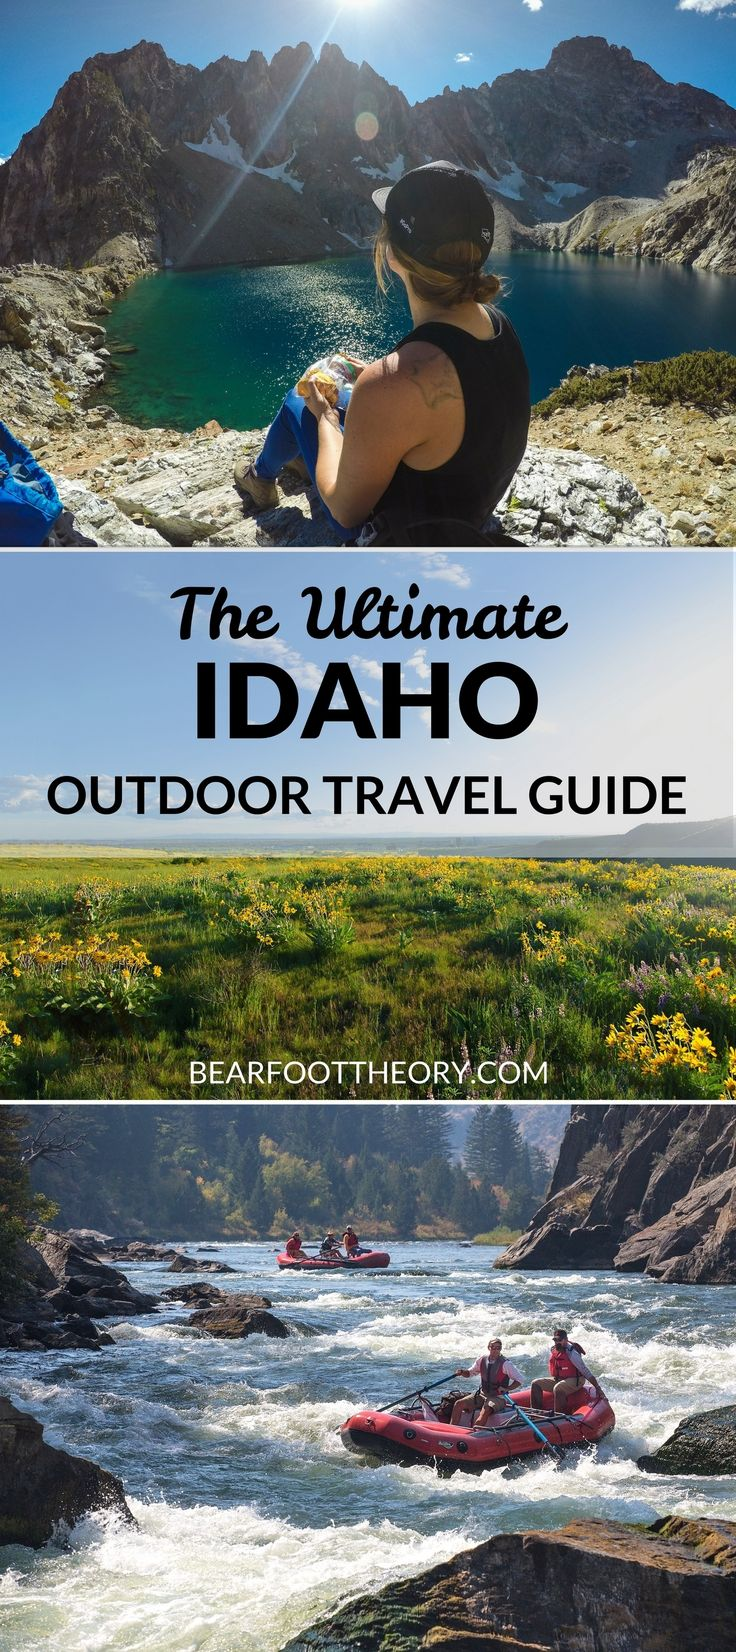 Plan an adventurous trip to Idaho with our outdoor travel guide featuring the best outdoor activities, destinations & most popular Idaho blog posts